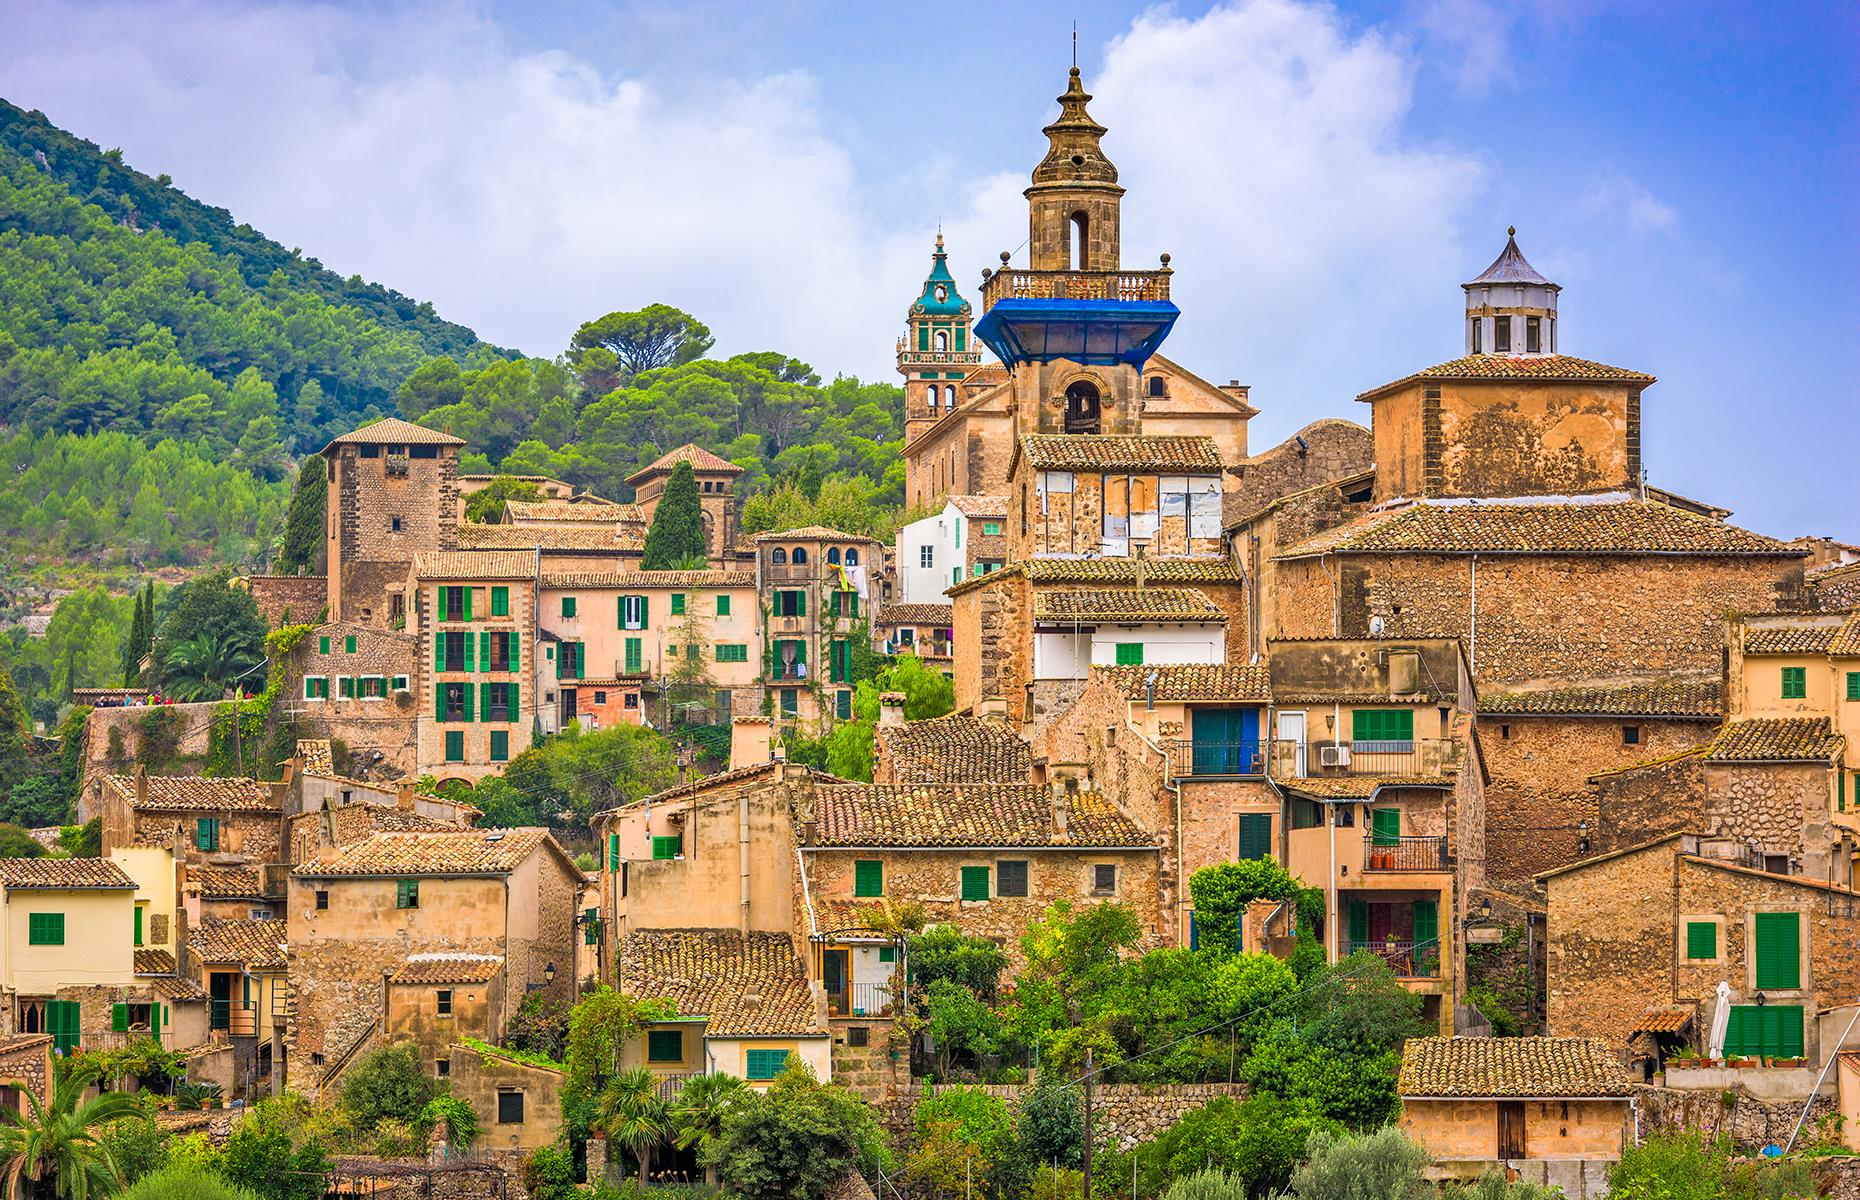 Slide 7 of 31: Nestled in the truly picturesque valley of the Tramuntana mountains, Valldemossa is one of Mallorca's most idyllic spots. An area of outstanding beauty, the village's sun-bleached stones stand out against the green farmlands and forests around it.